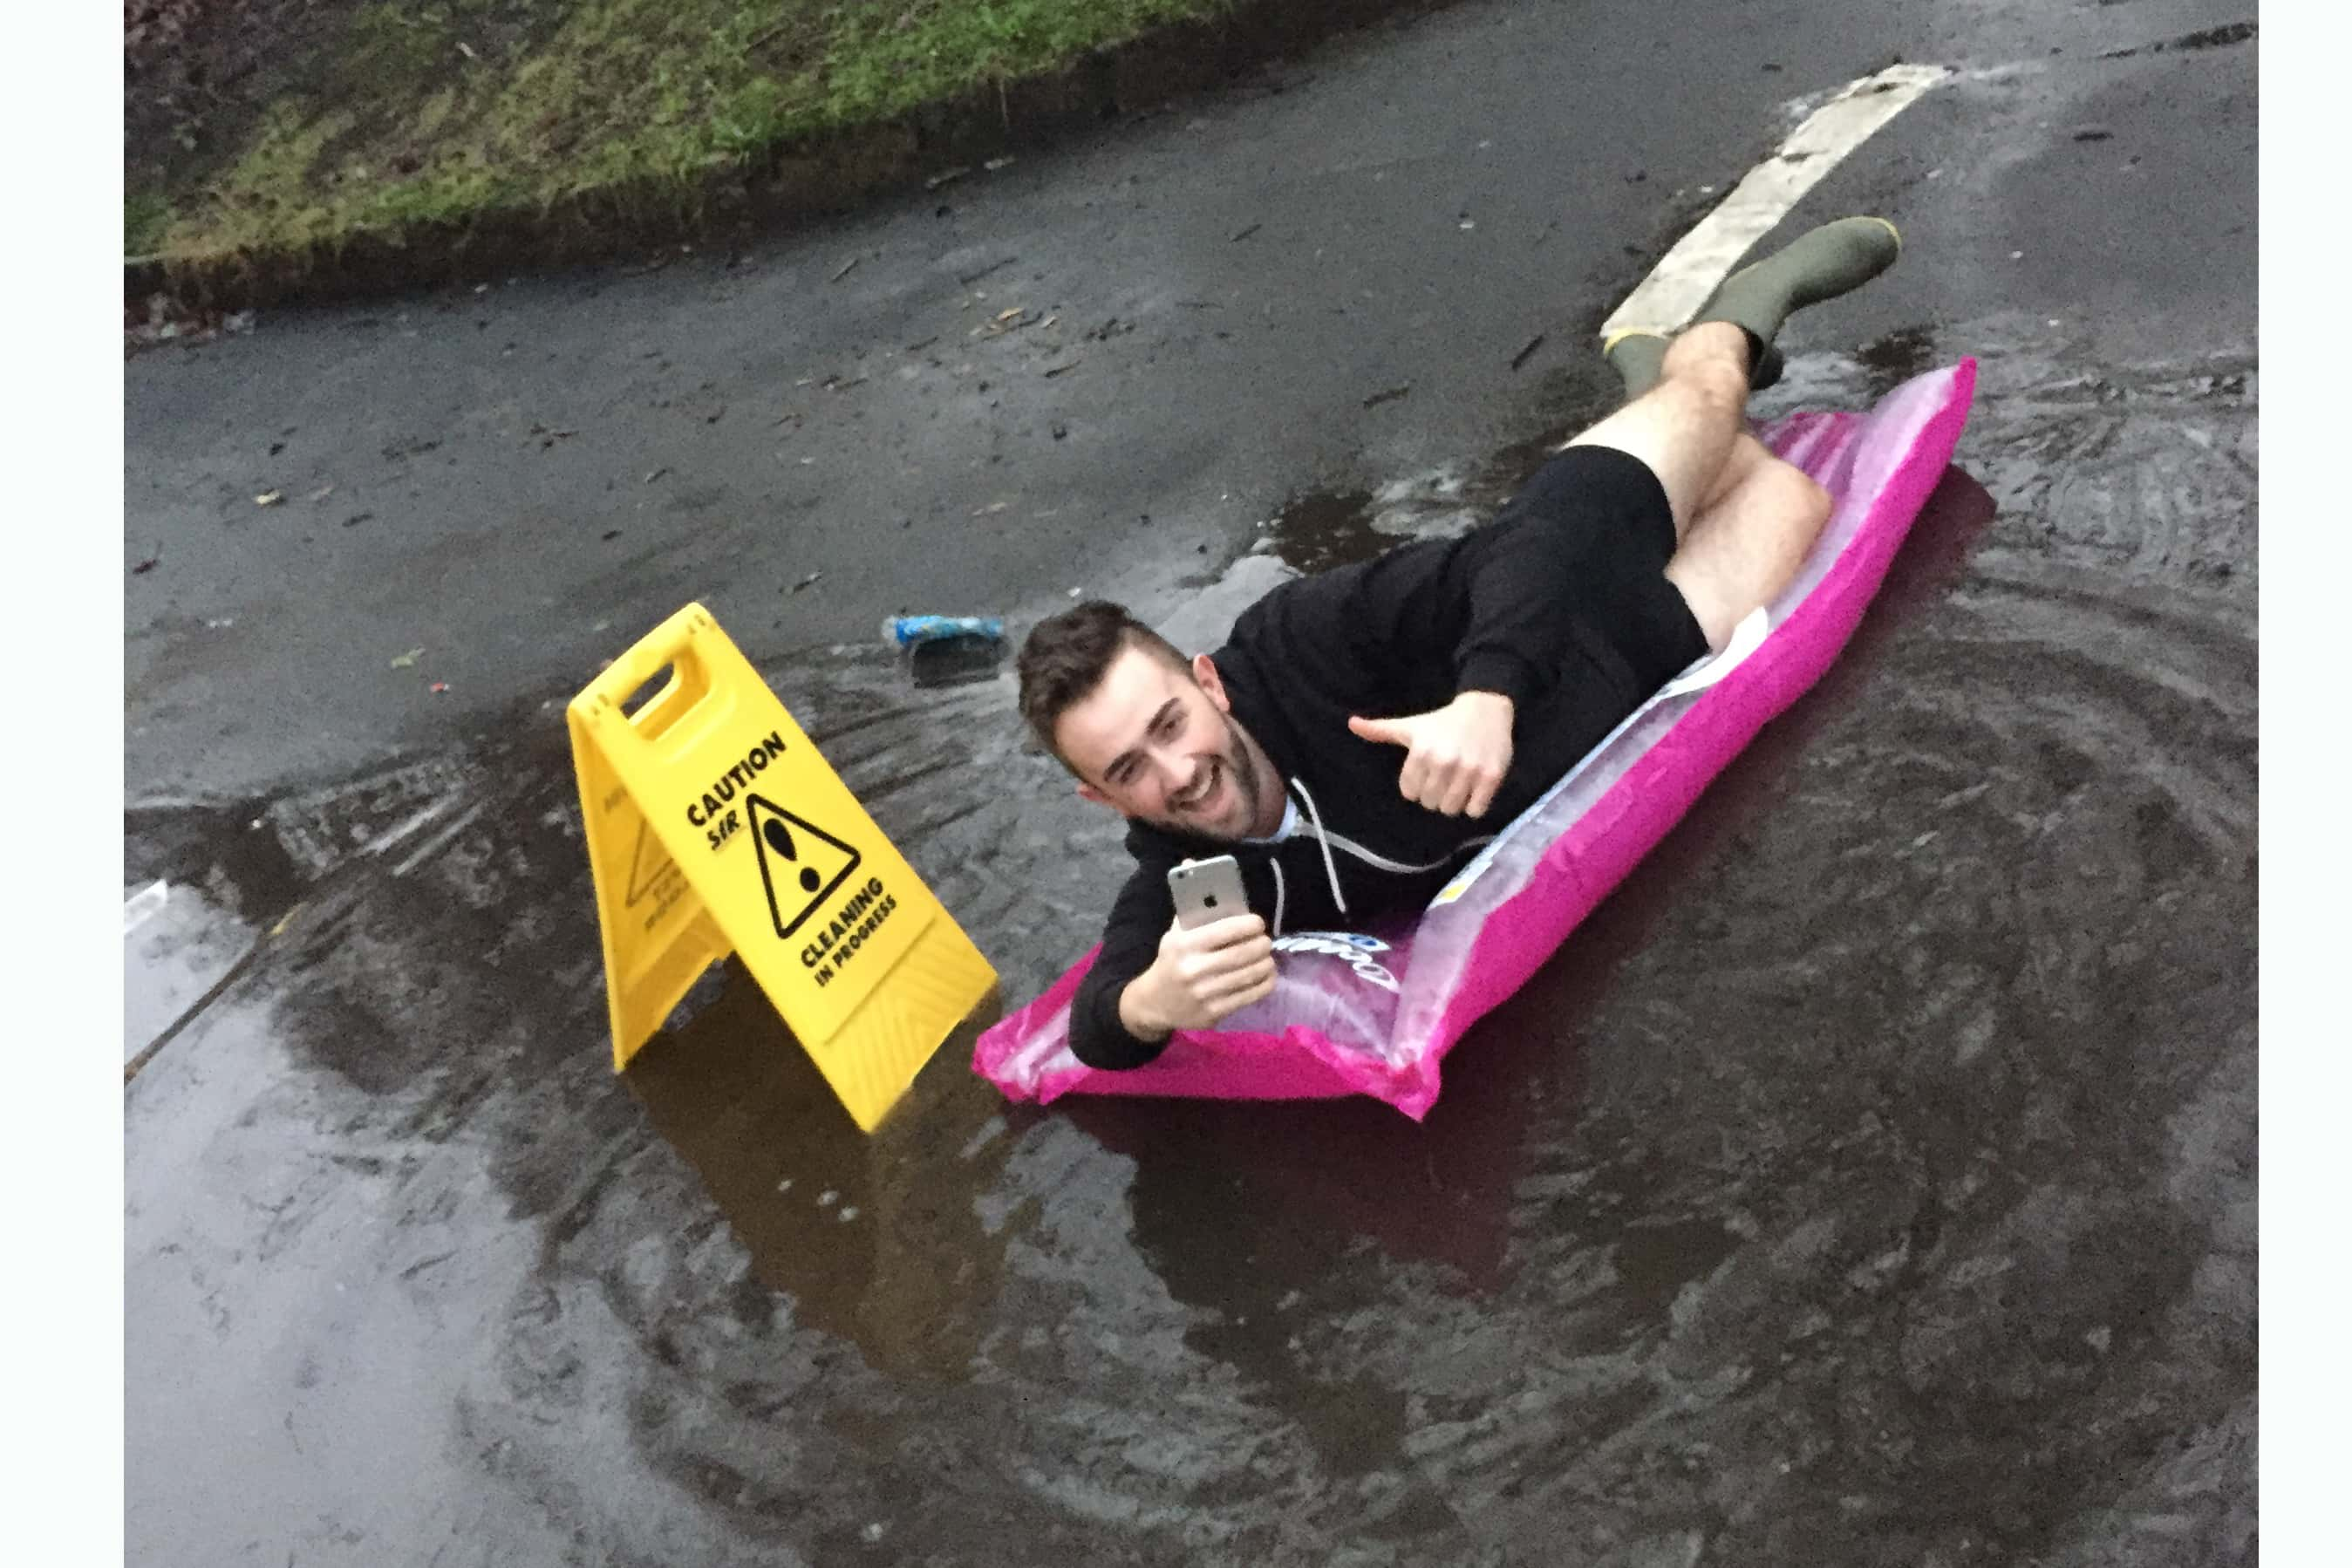 Puddle in Newcastle goes viral after live stream set up